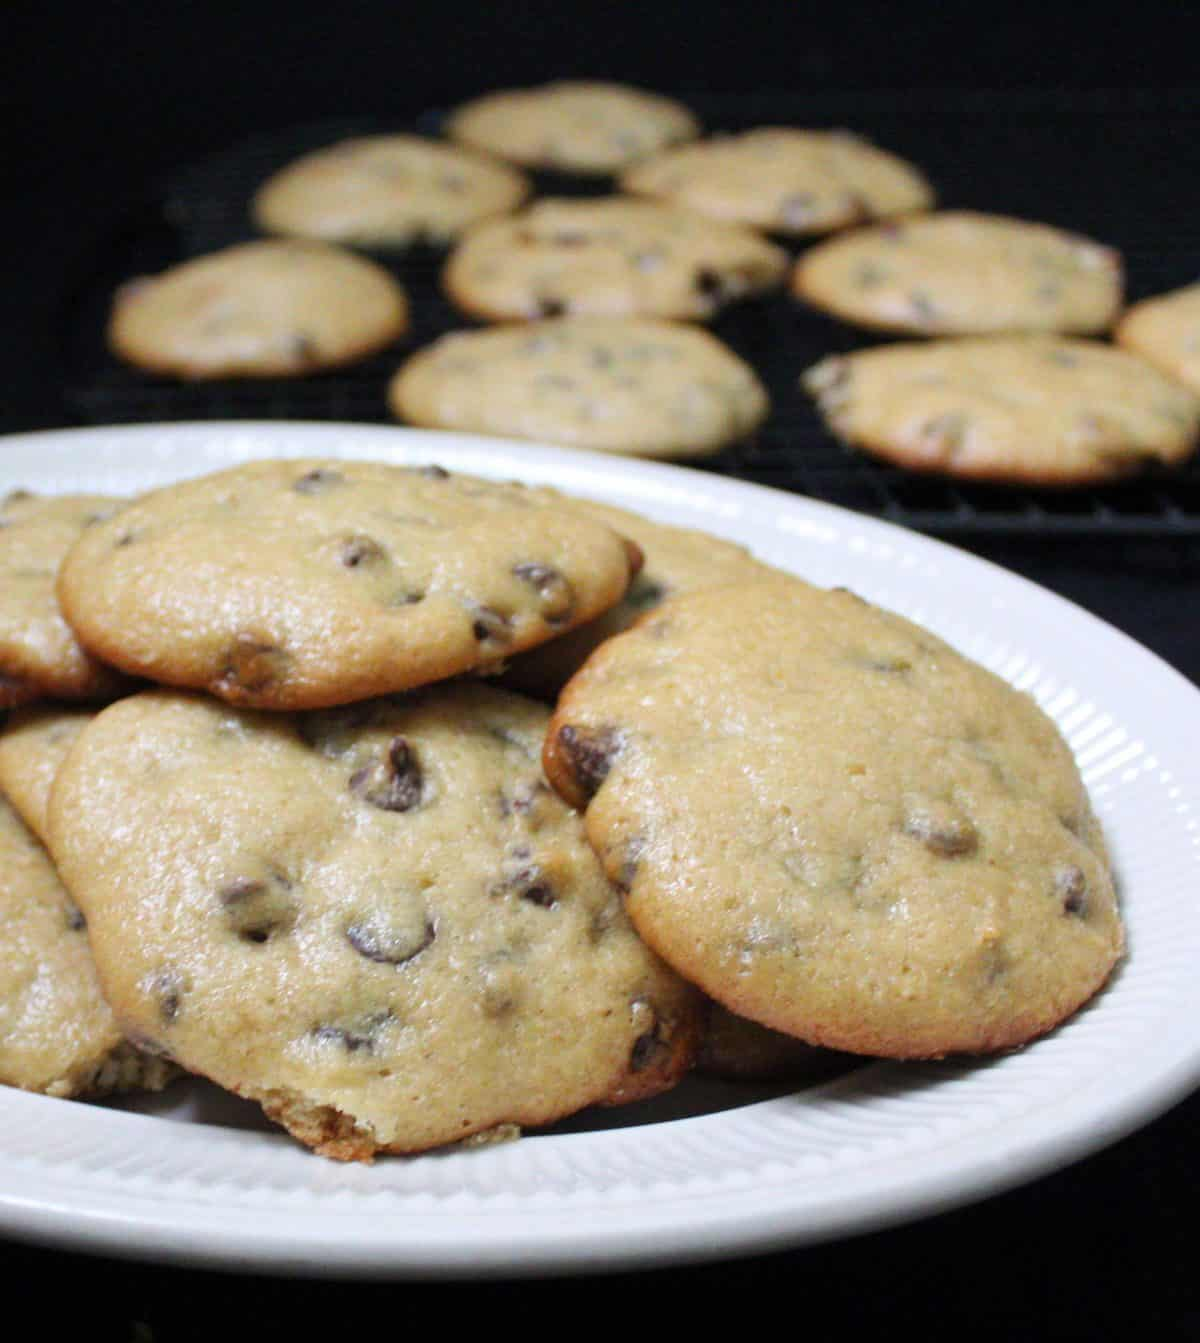 Close up of vegan sourdough chocolate chip cookies on a white plate.